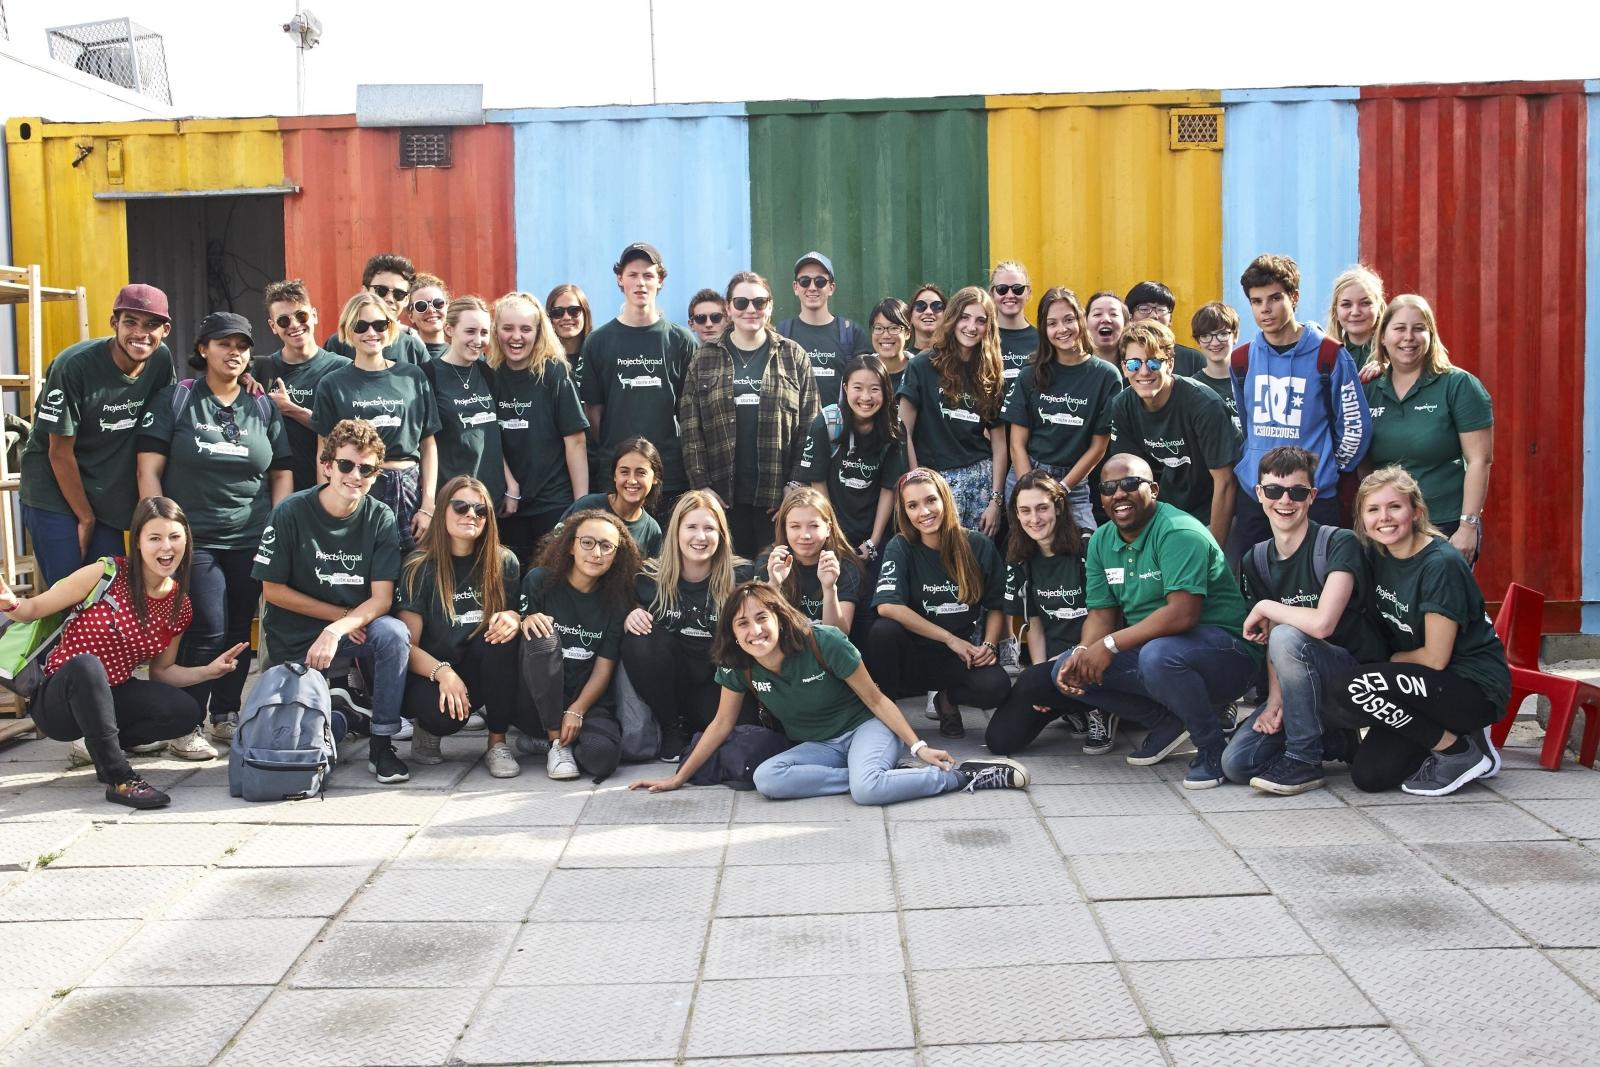 High school volunteer program abroad group photo in South Africa.